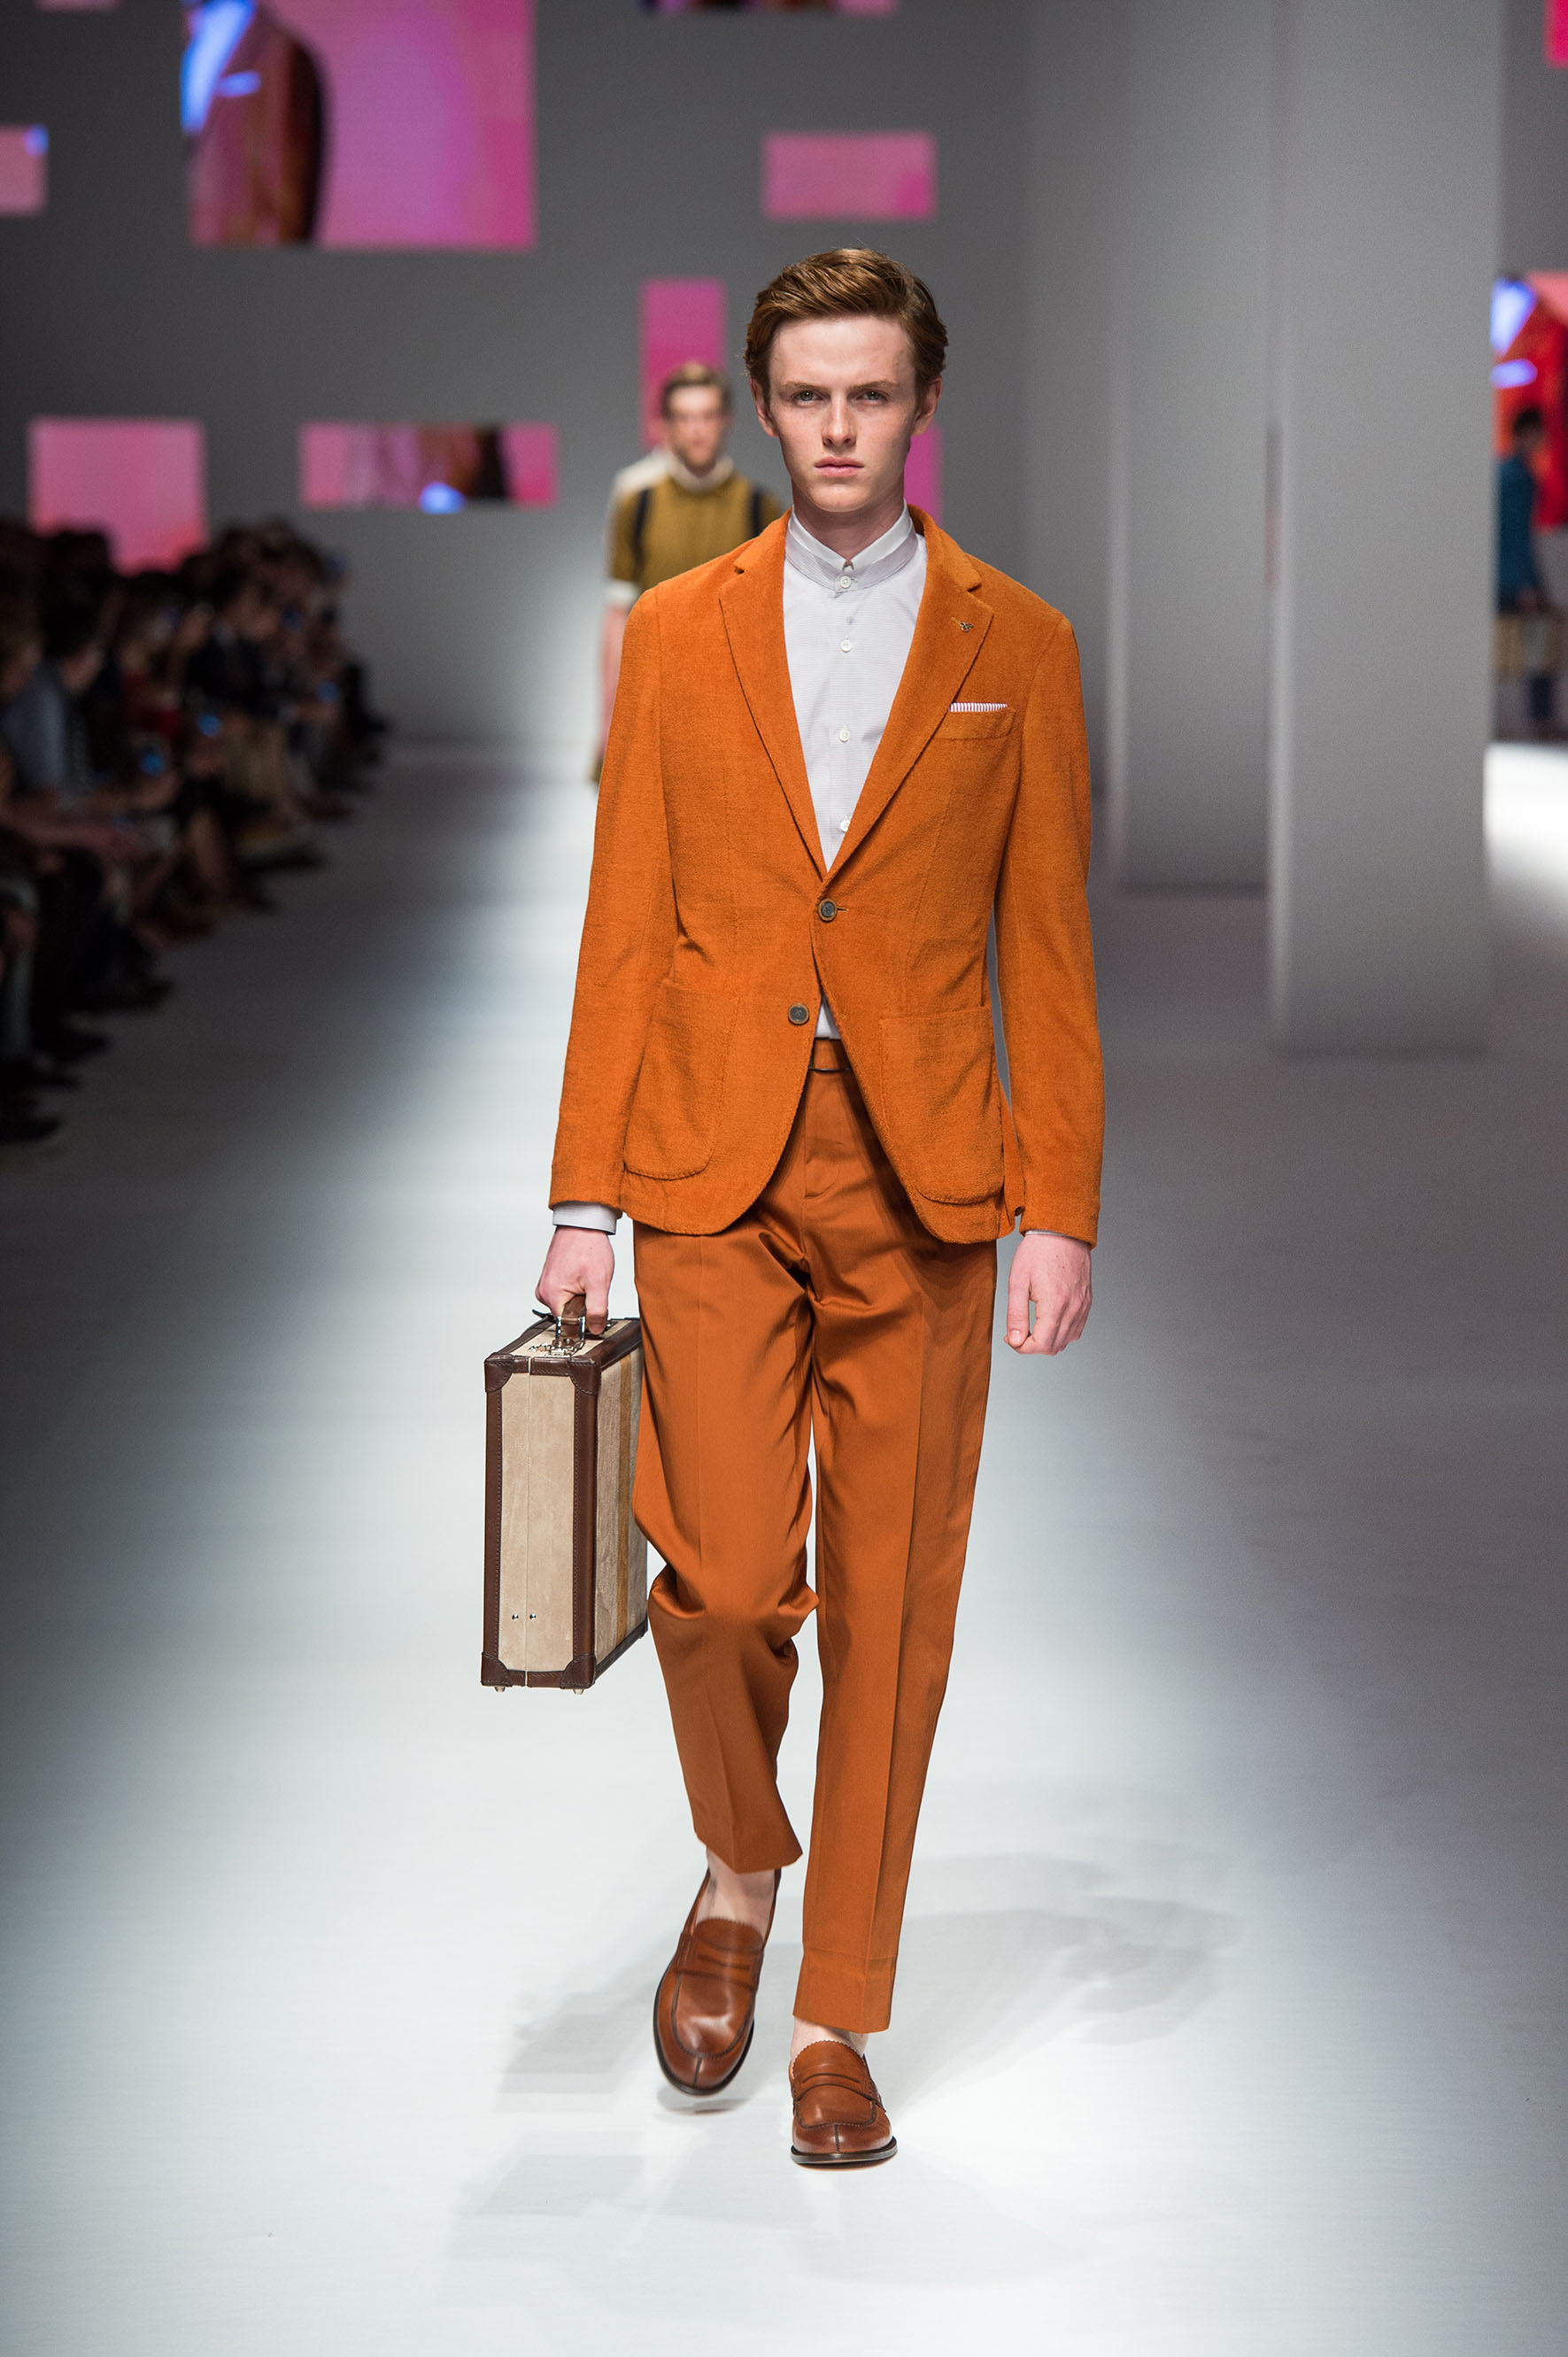 Two-button jacket with terry effect stripes, pants with removable belt, calfskin loafers, briefcase with contrast stripe